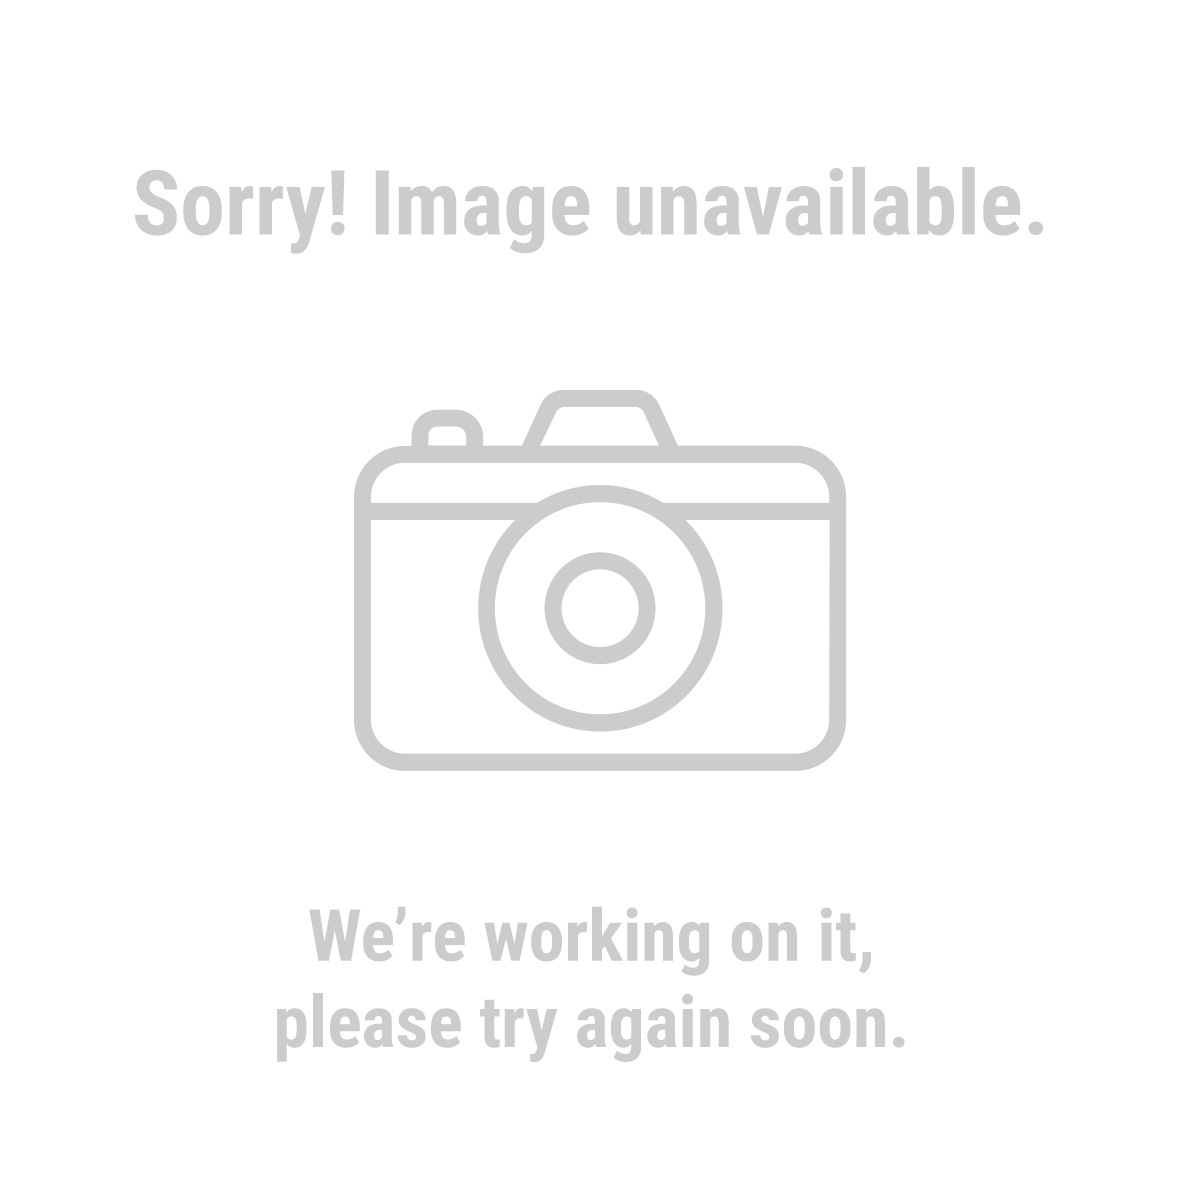 Router table plate harbor freight best router 2017 benchtop router table harbor freight keyboard keysfo Image collections